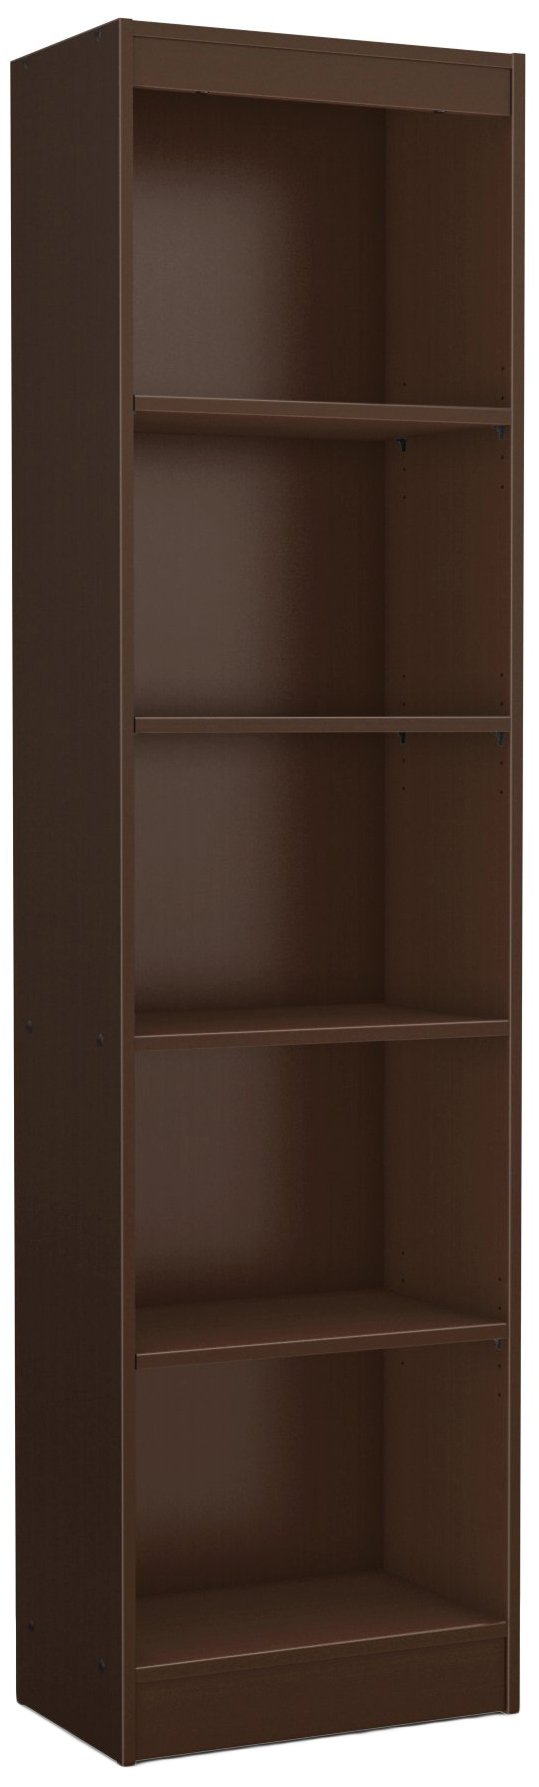 South Shore Narrow 5-Shelf Storage Bookcase, Chocolate by South Shore